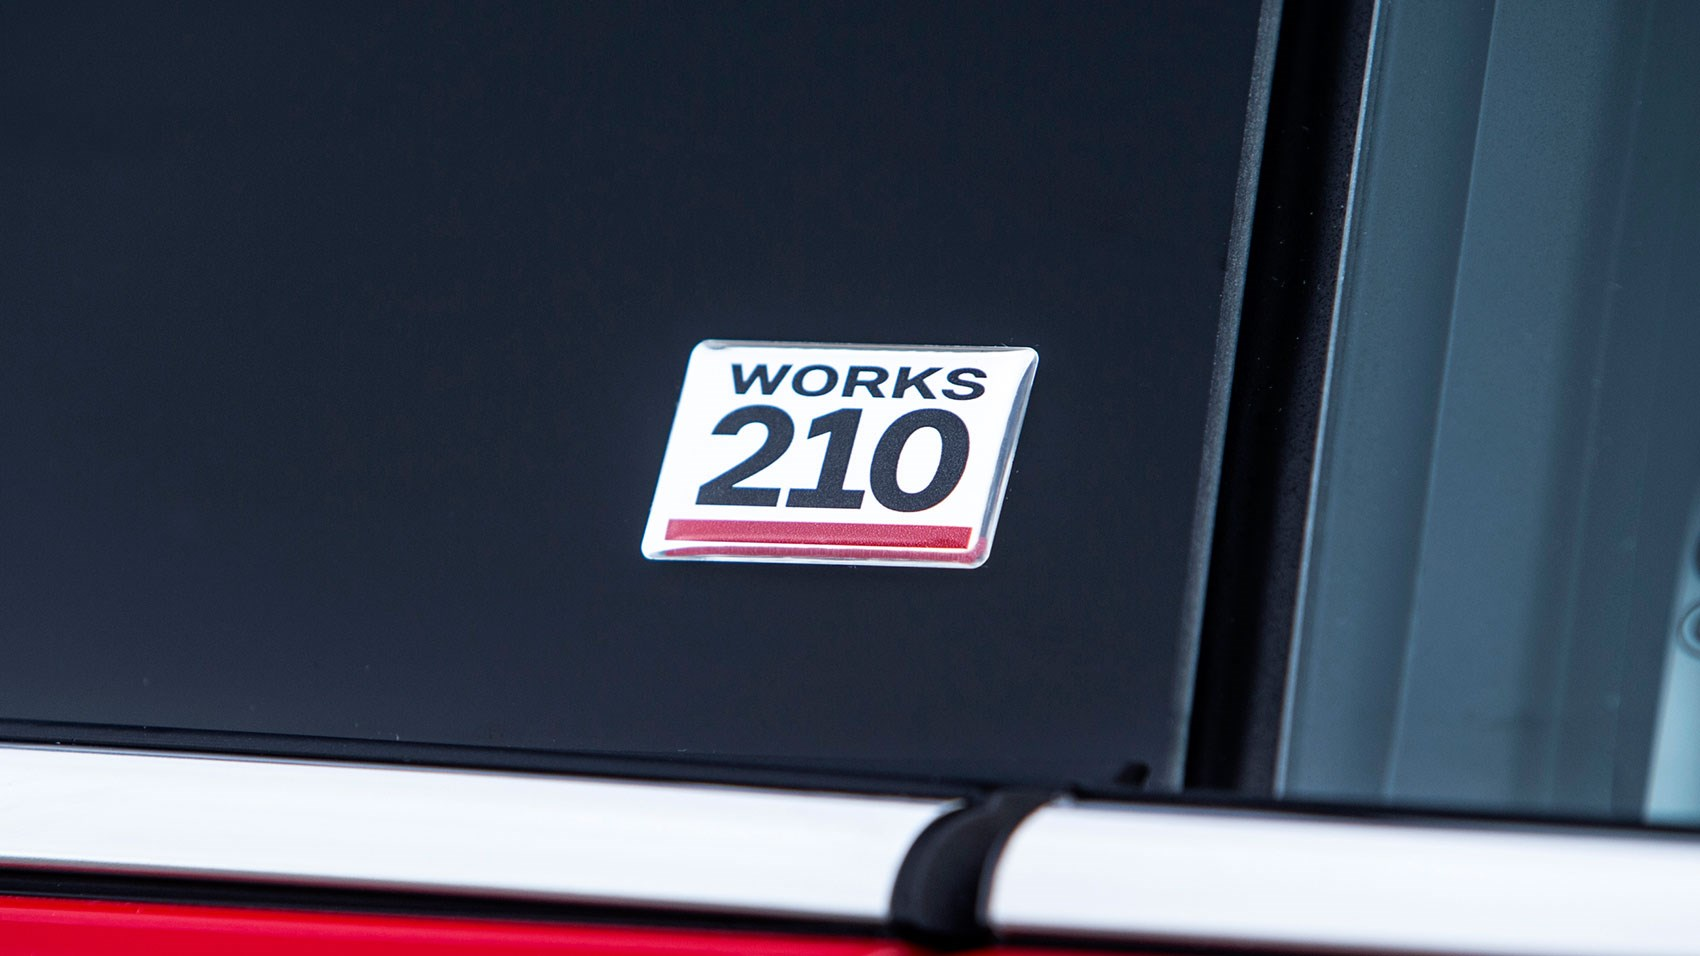 Works 210 badge: a halfway house kinda Mini hot hatch